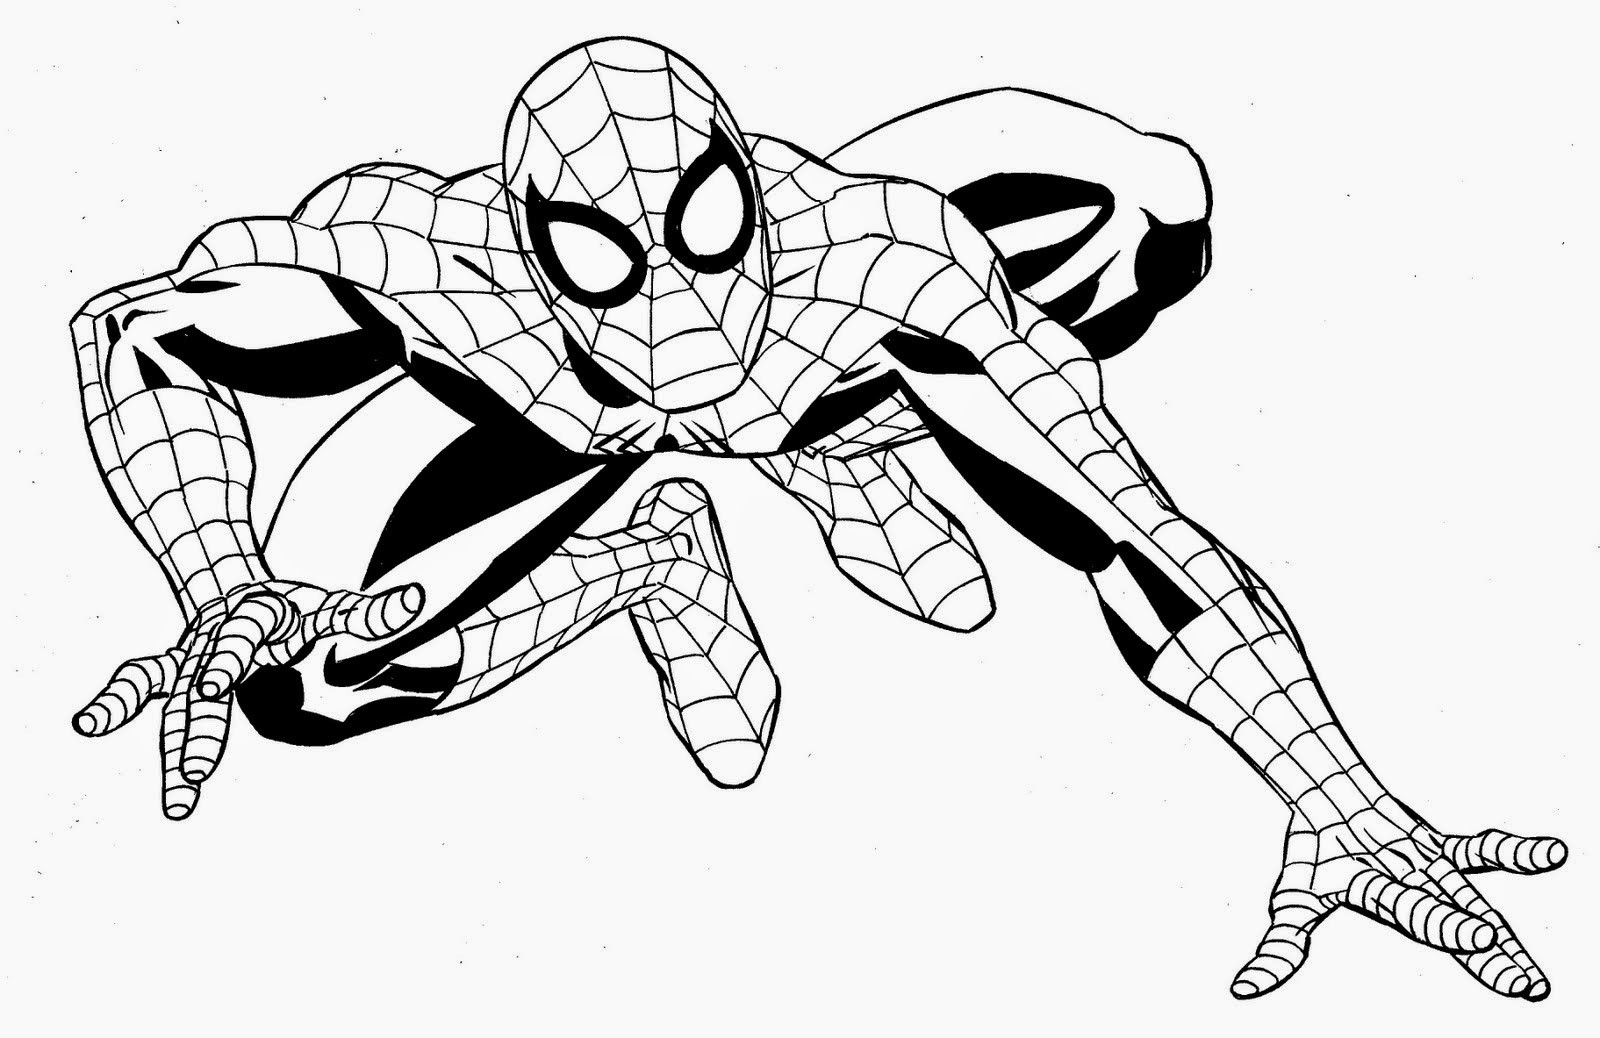 Super Hero Coloring Book Pages  Coloring Pages Superhero Coloring Pages Free and Printable